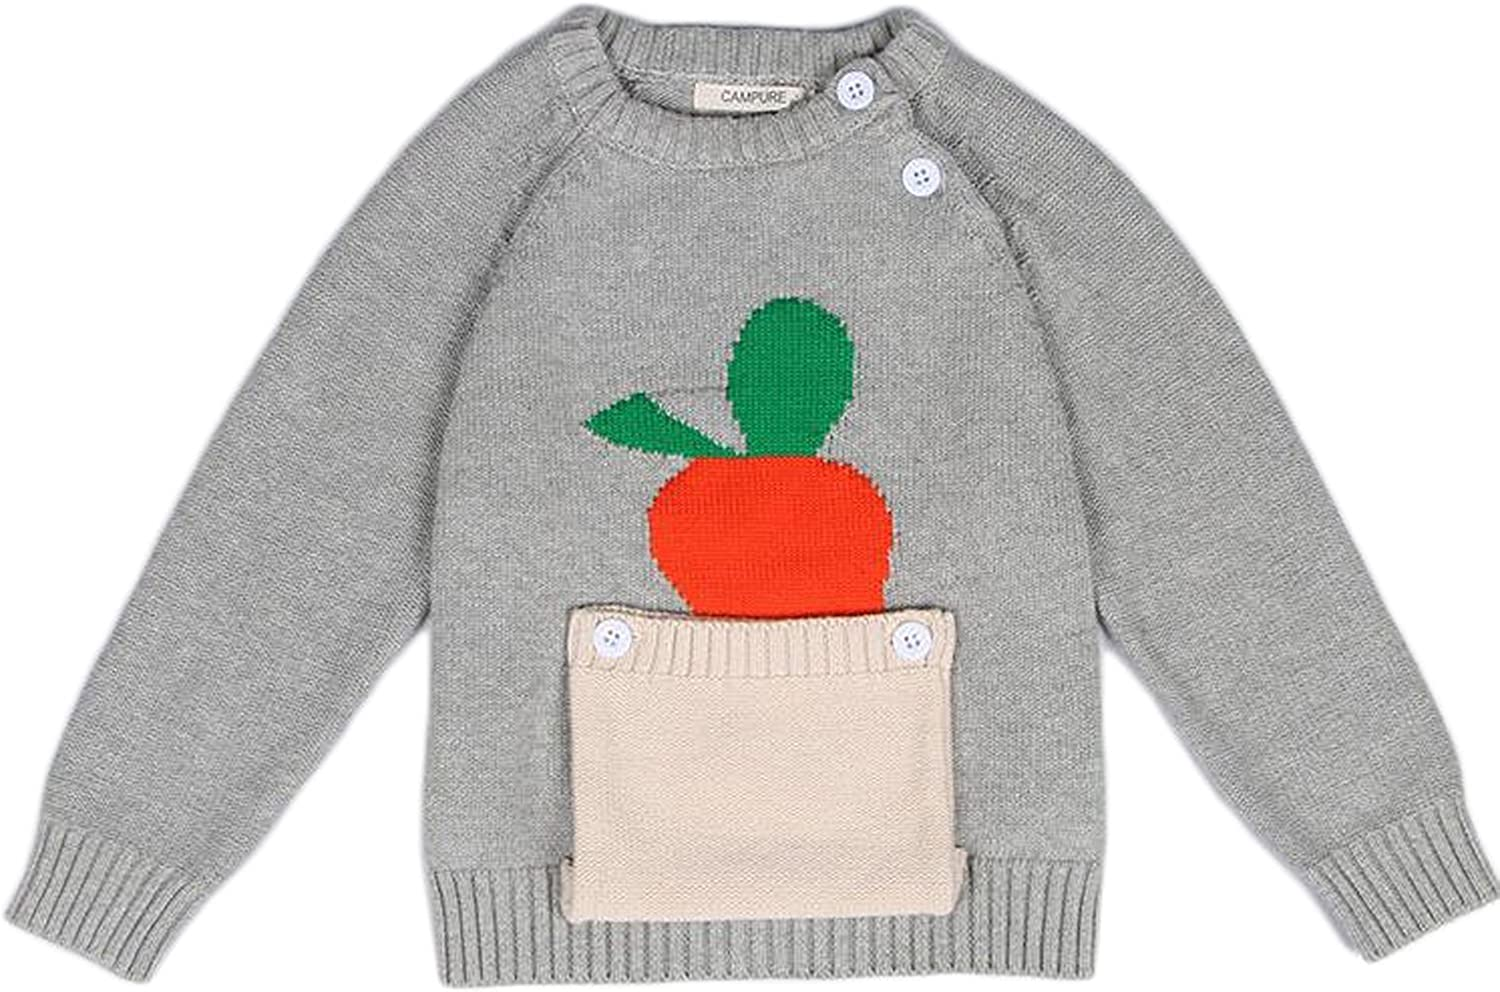 Jojobaby Unisex Kids Baby Winter Cotton Knit Carrot Pocket Round Neck Pullover Sweater Sweatshirt